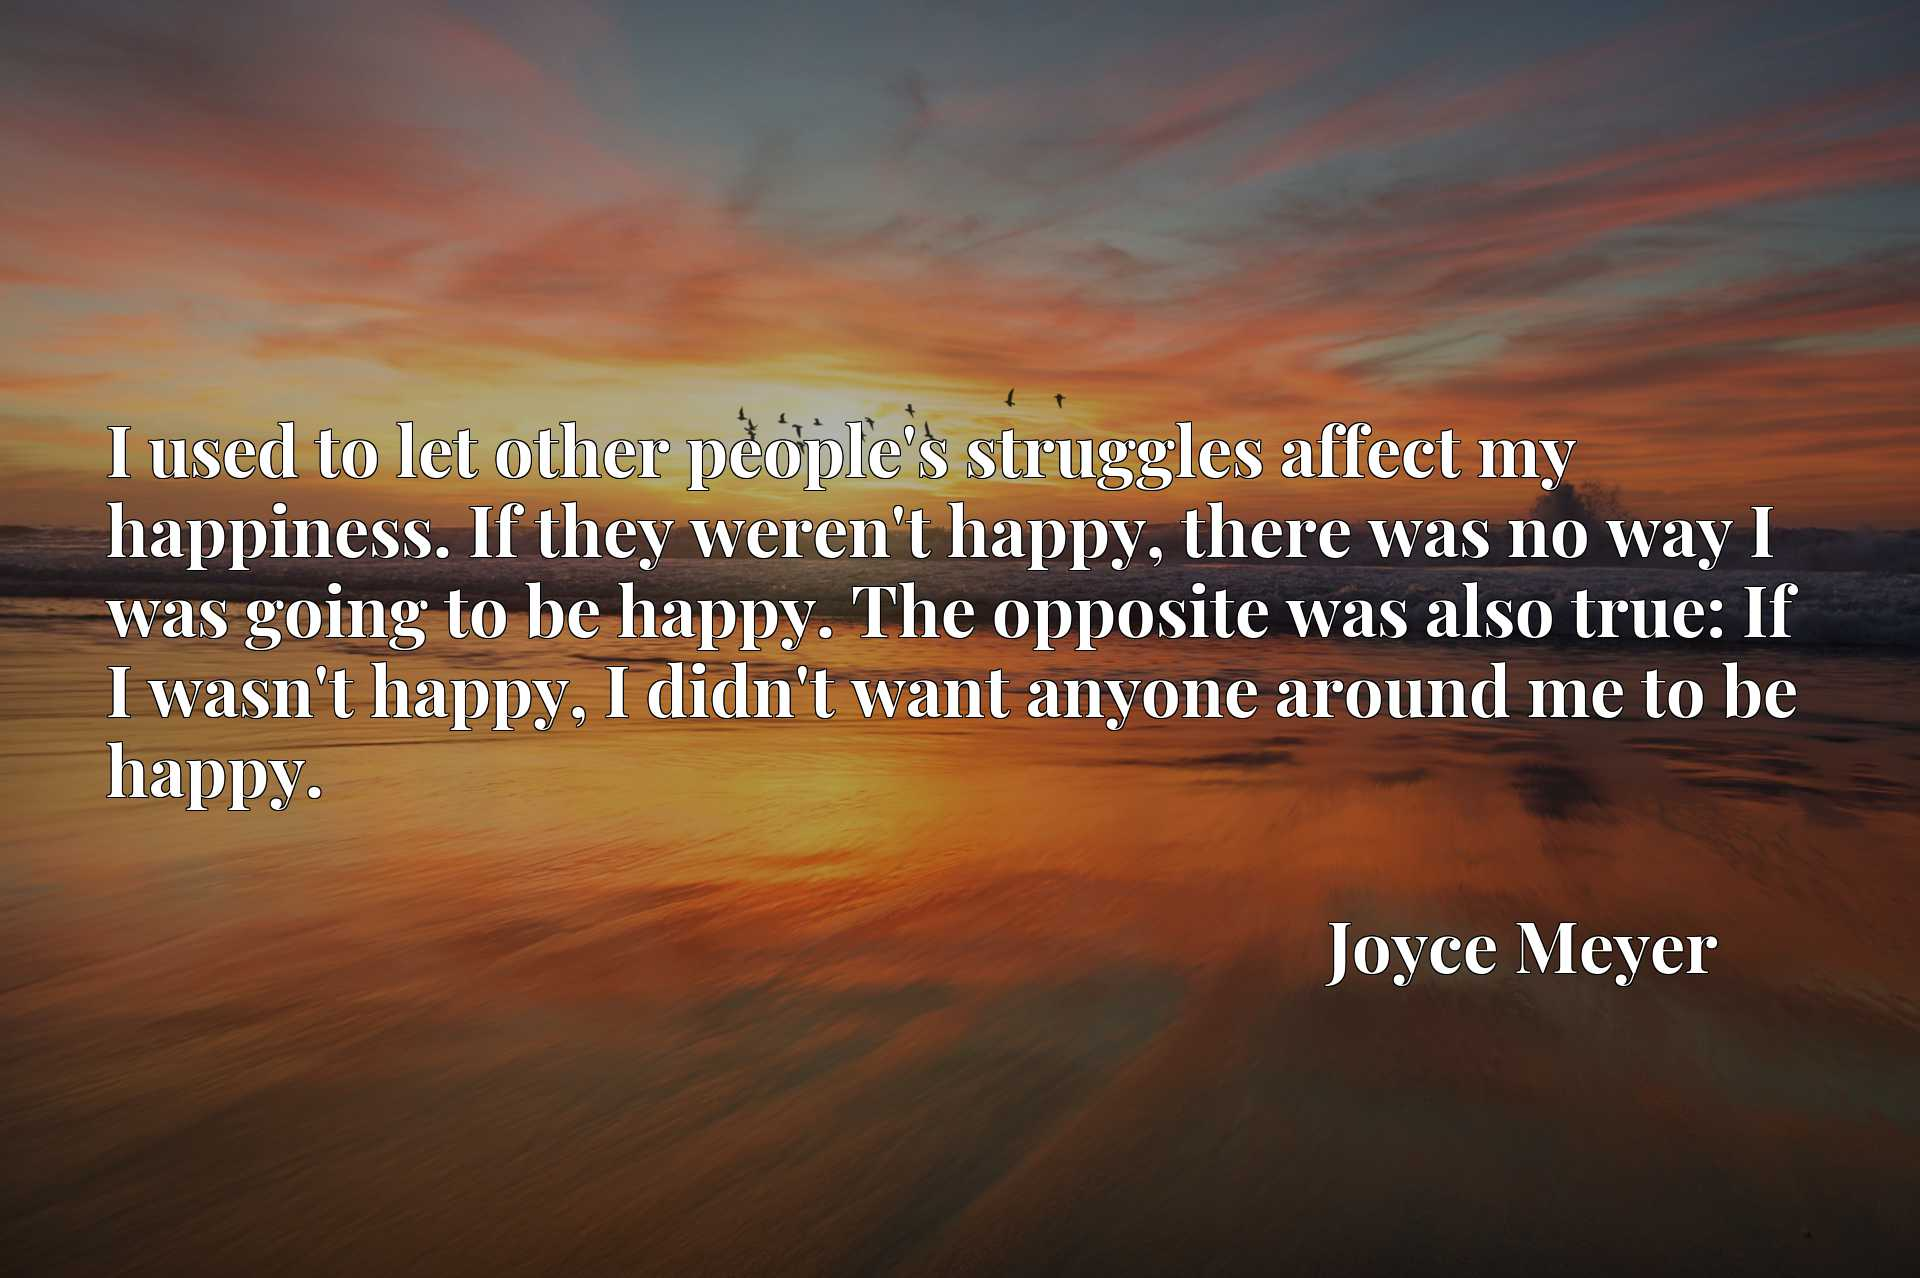 I used to let other people's struggles affect my happiness. If they weren't happy, there was no way I was going to be happy. The opposite was also true: If I wasn't happy, I didn't want anyone around me to be happy.